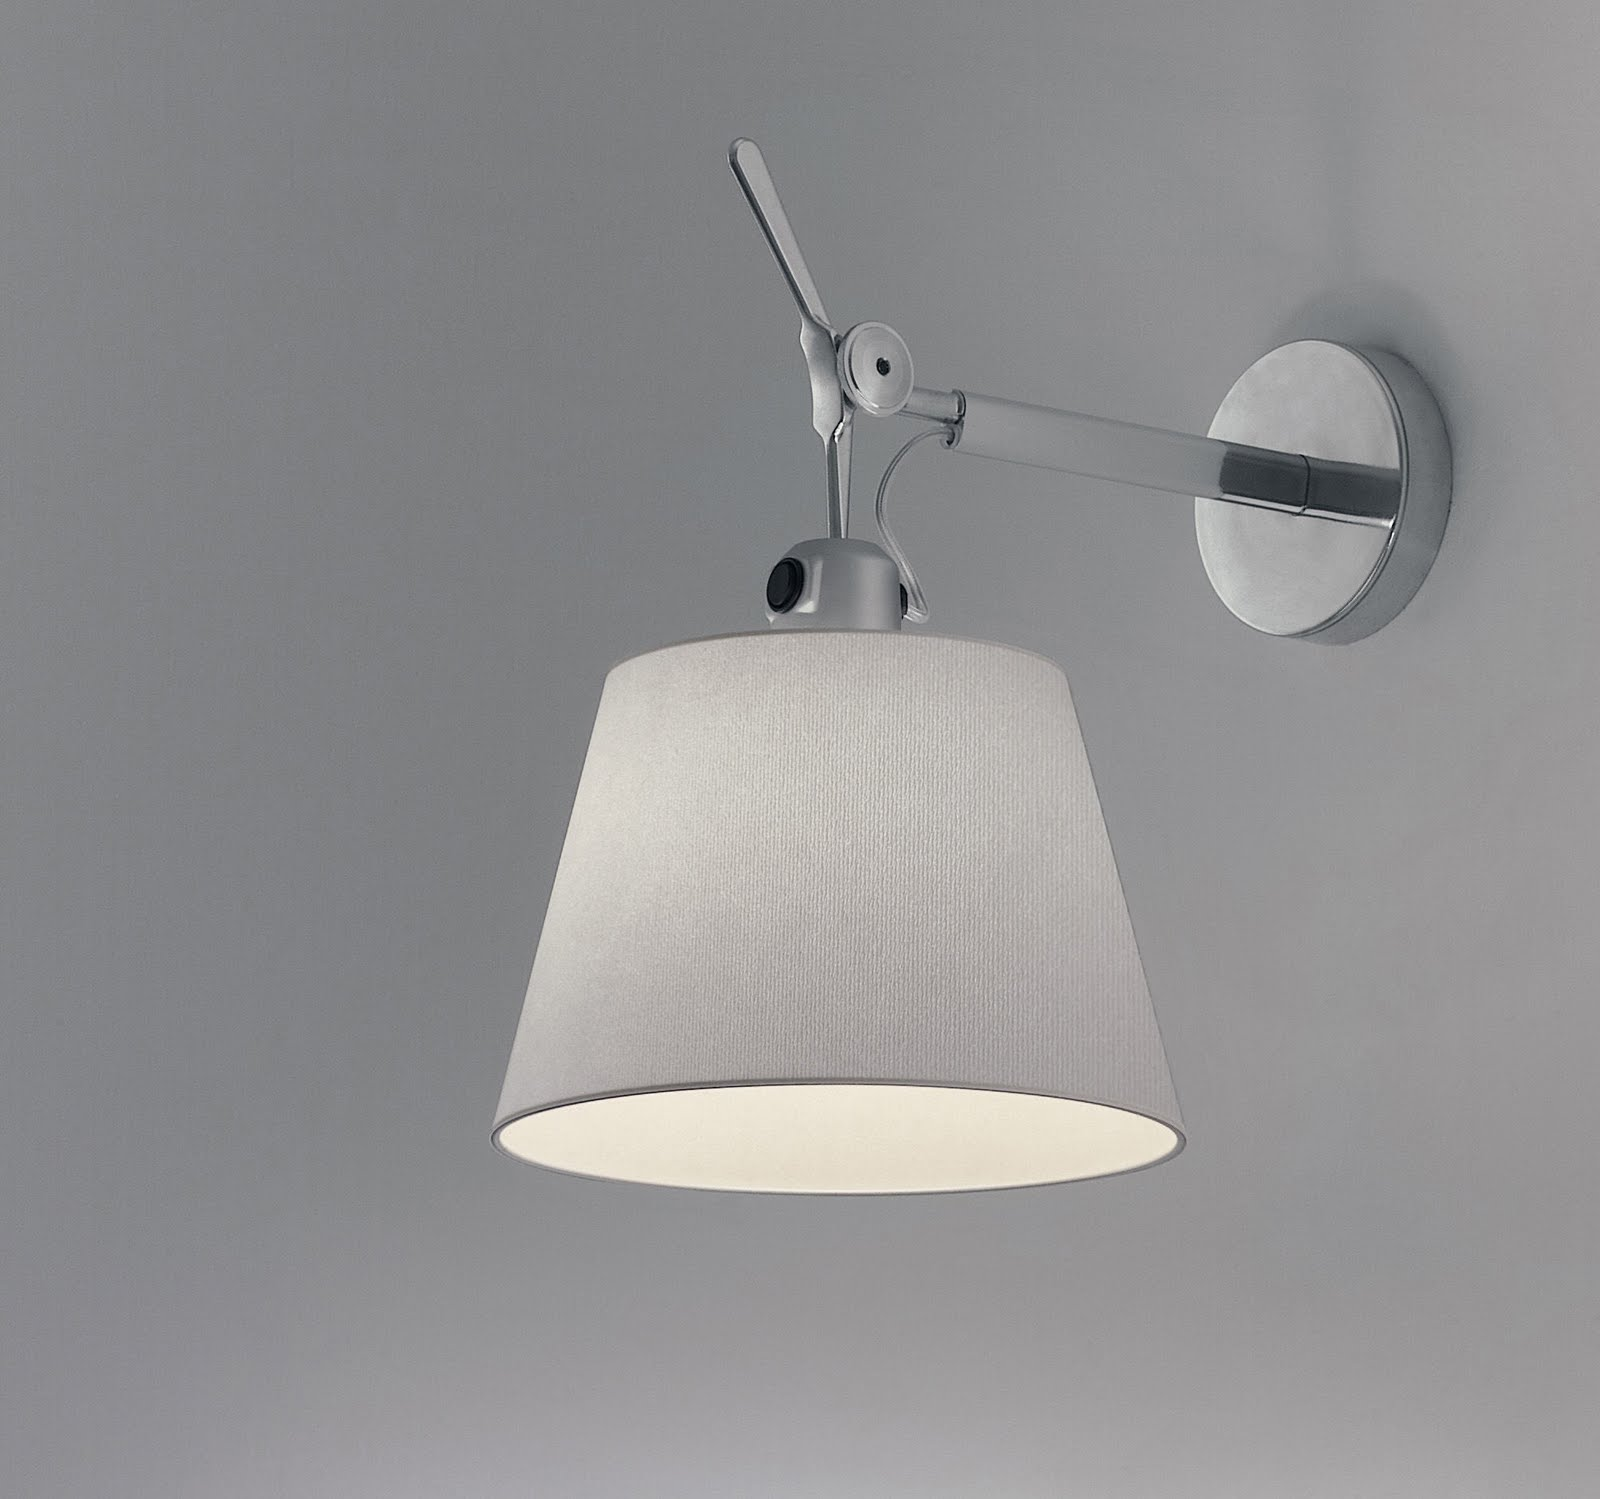 Artemide Tolomeo Wall Lamp Shade Light All Colors Wall Lamp